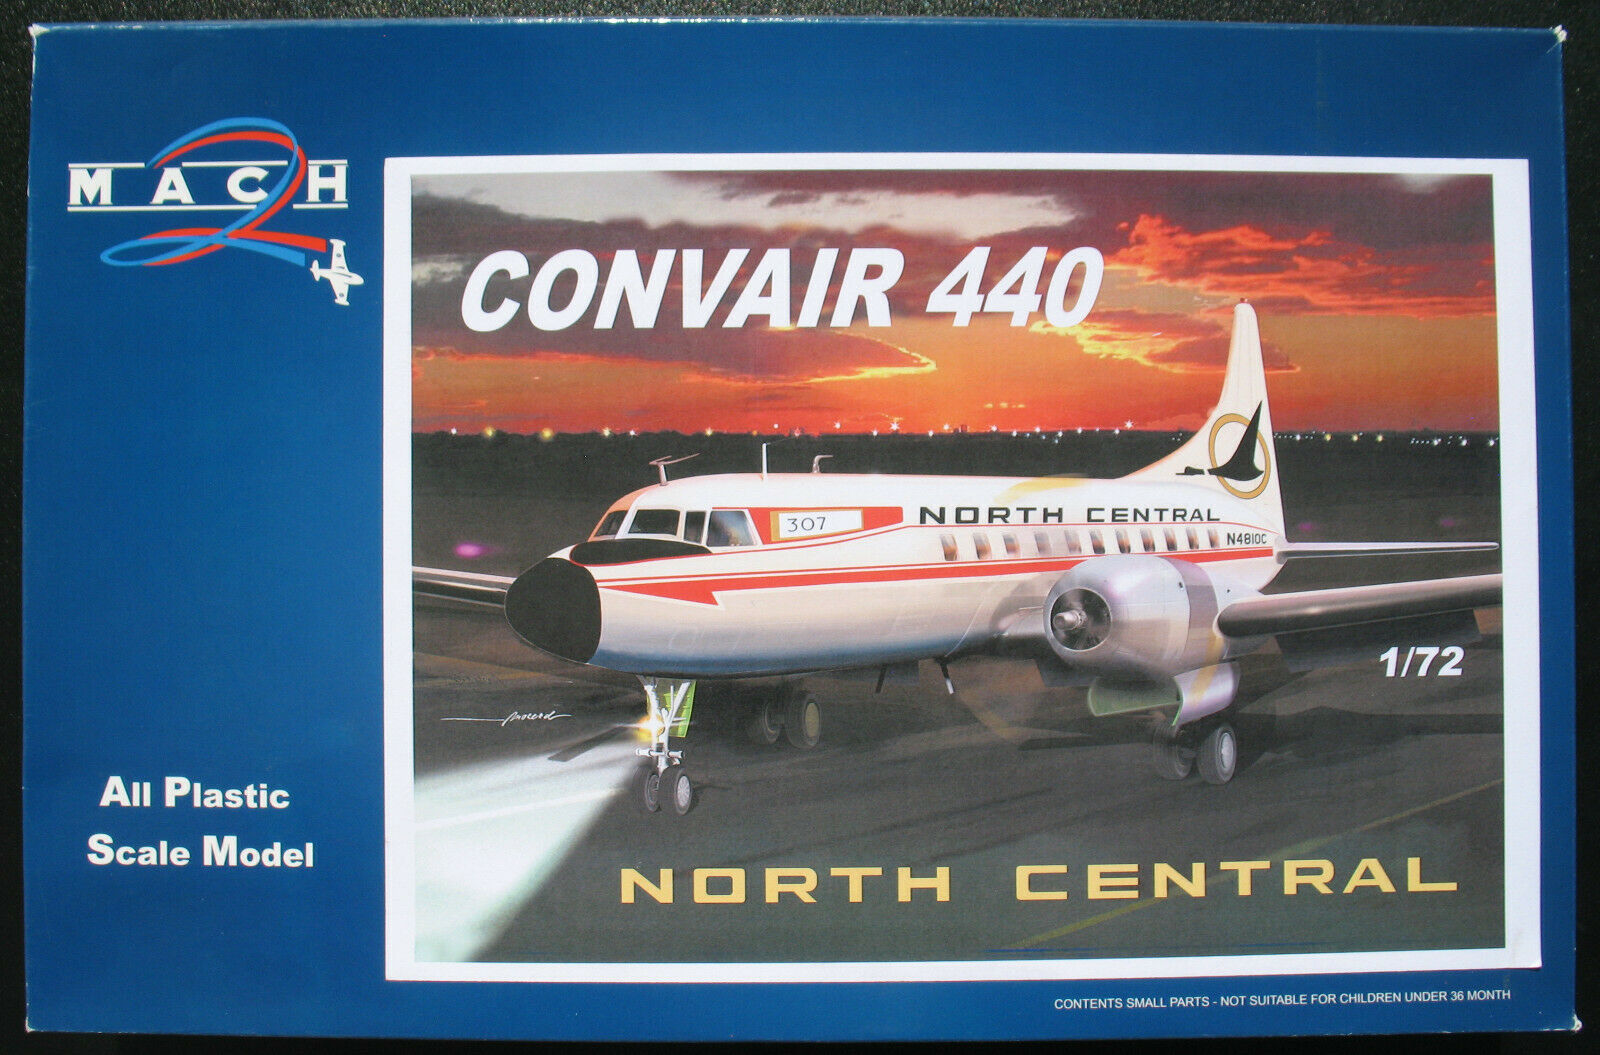 MACH 2 GP 055 - CONVAIR 440 - NORTH CENTRAL - 1 72 - Flugzeug Bausatz Model Kit